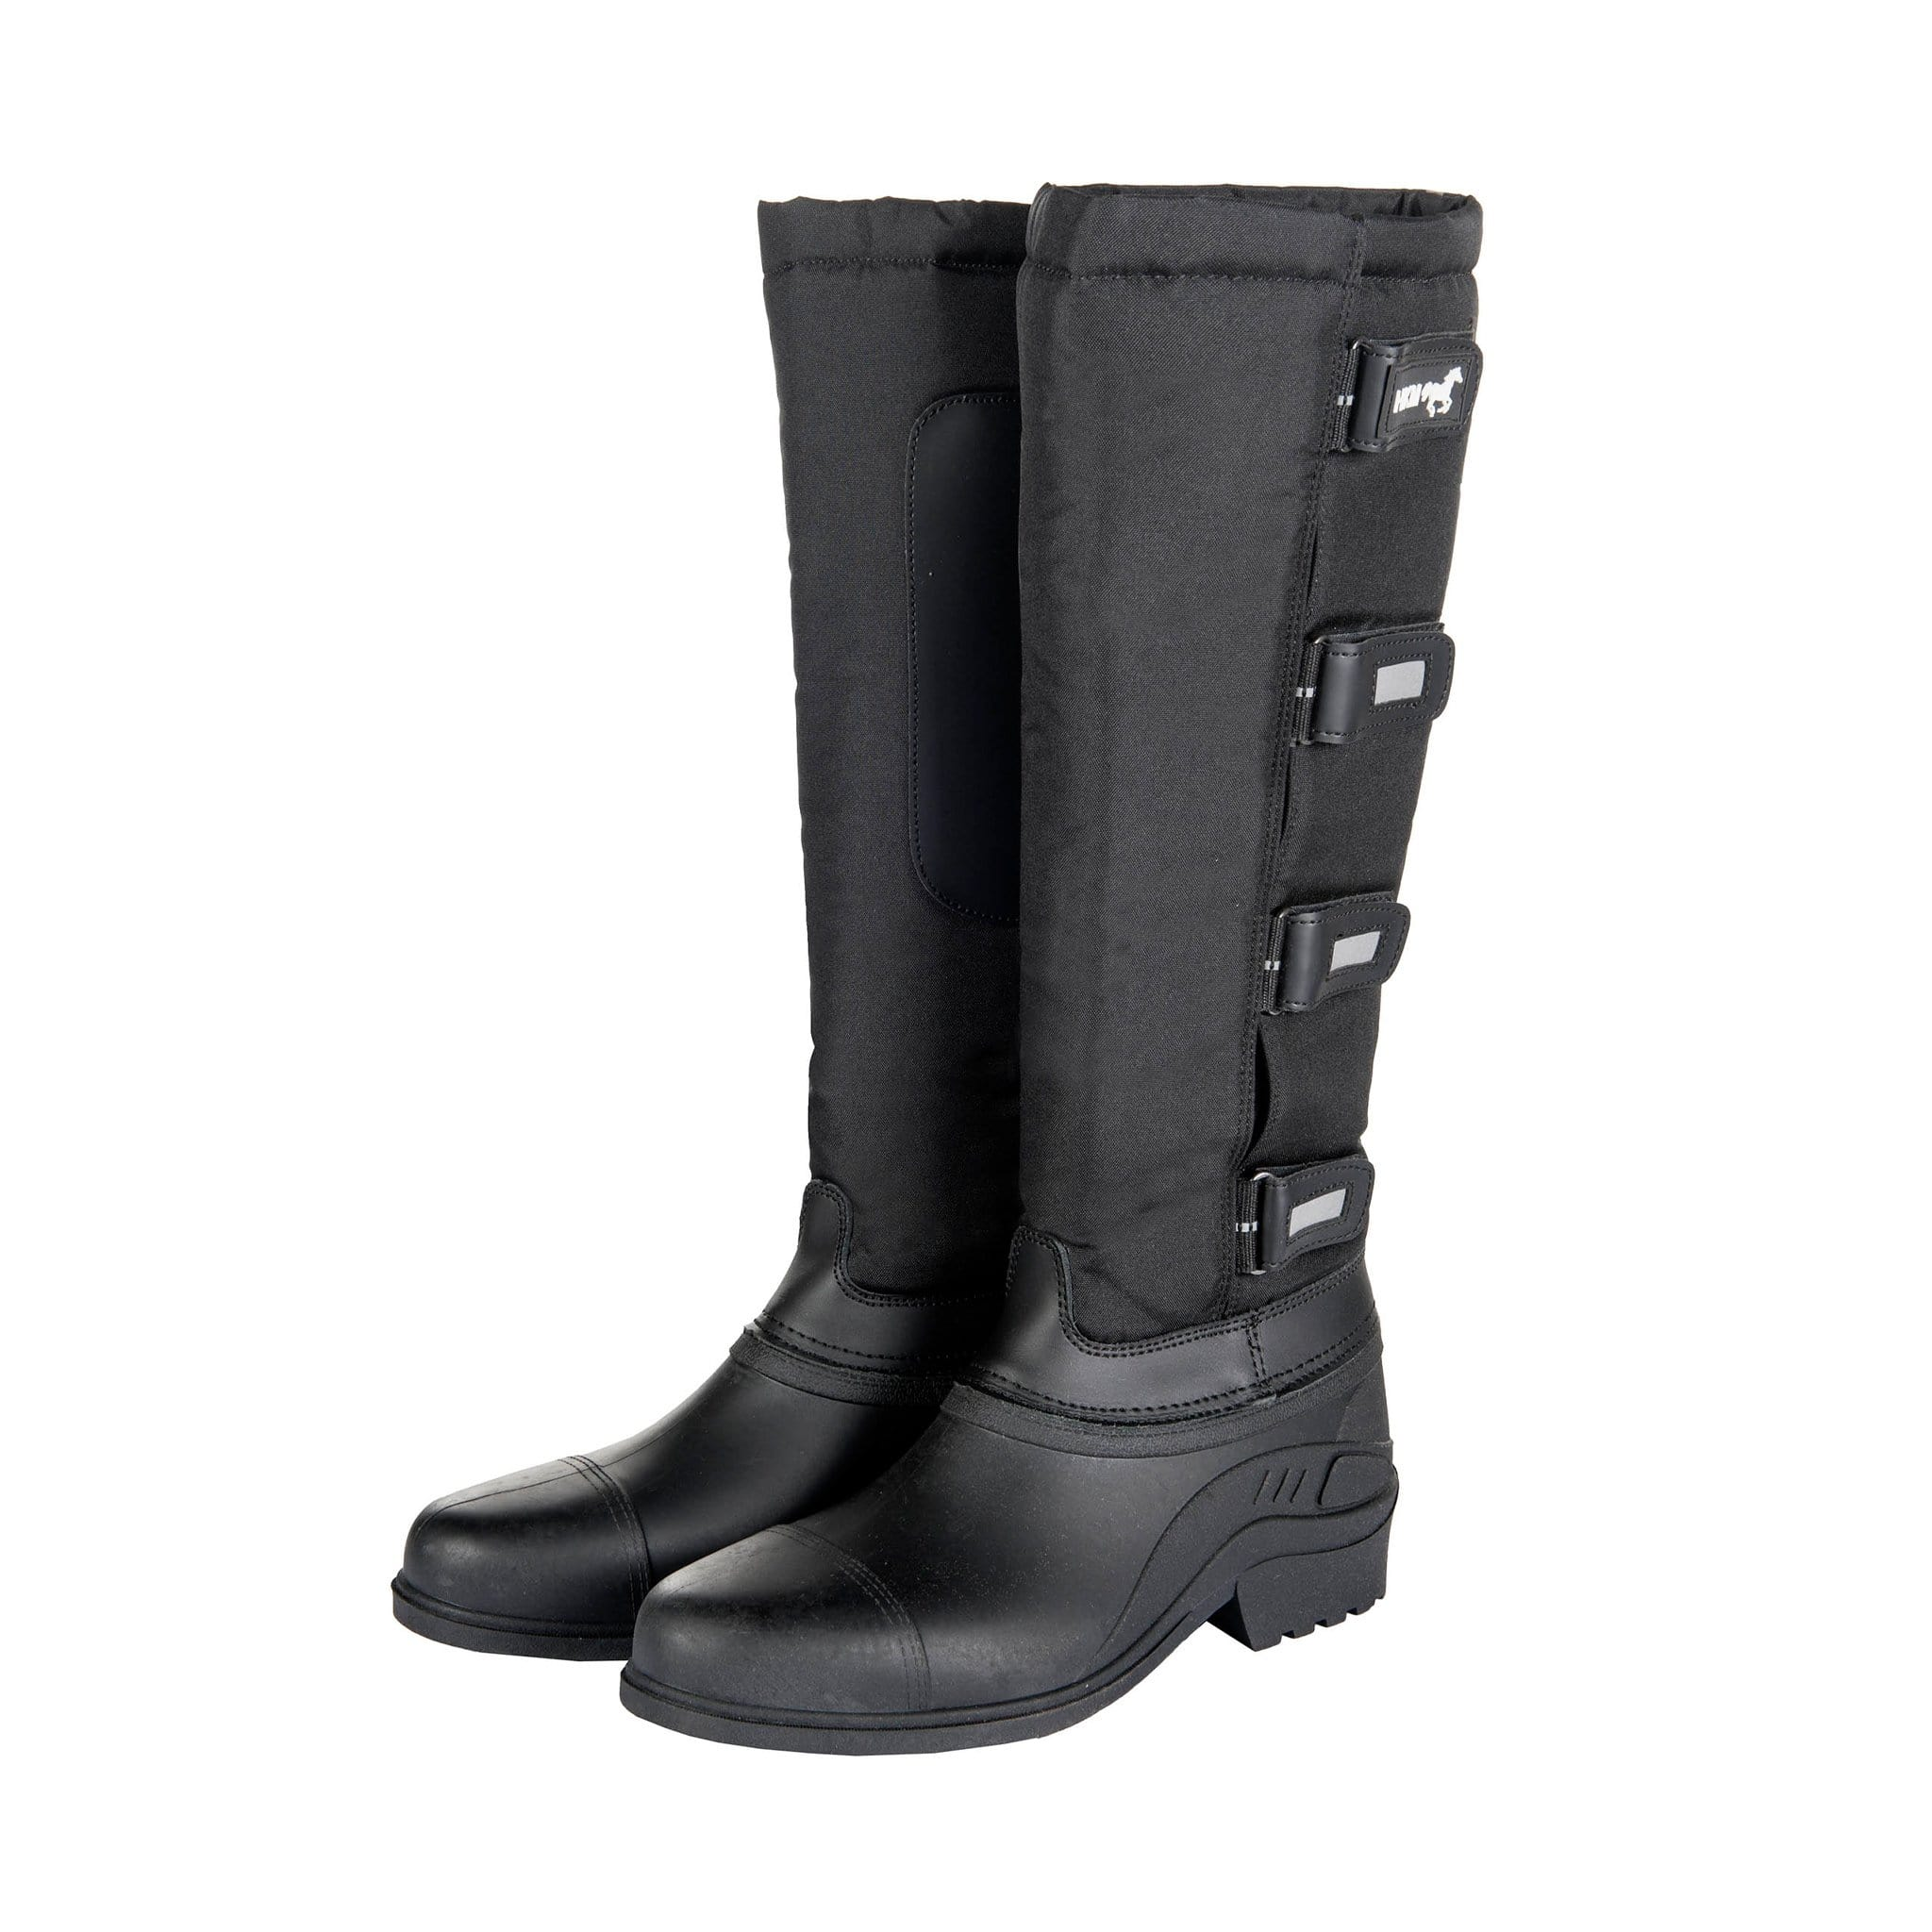 8780 Robusta Winter Thermo Boots